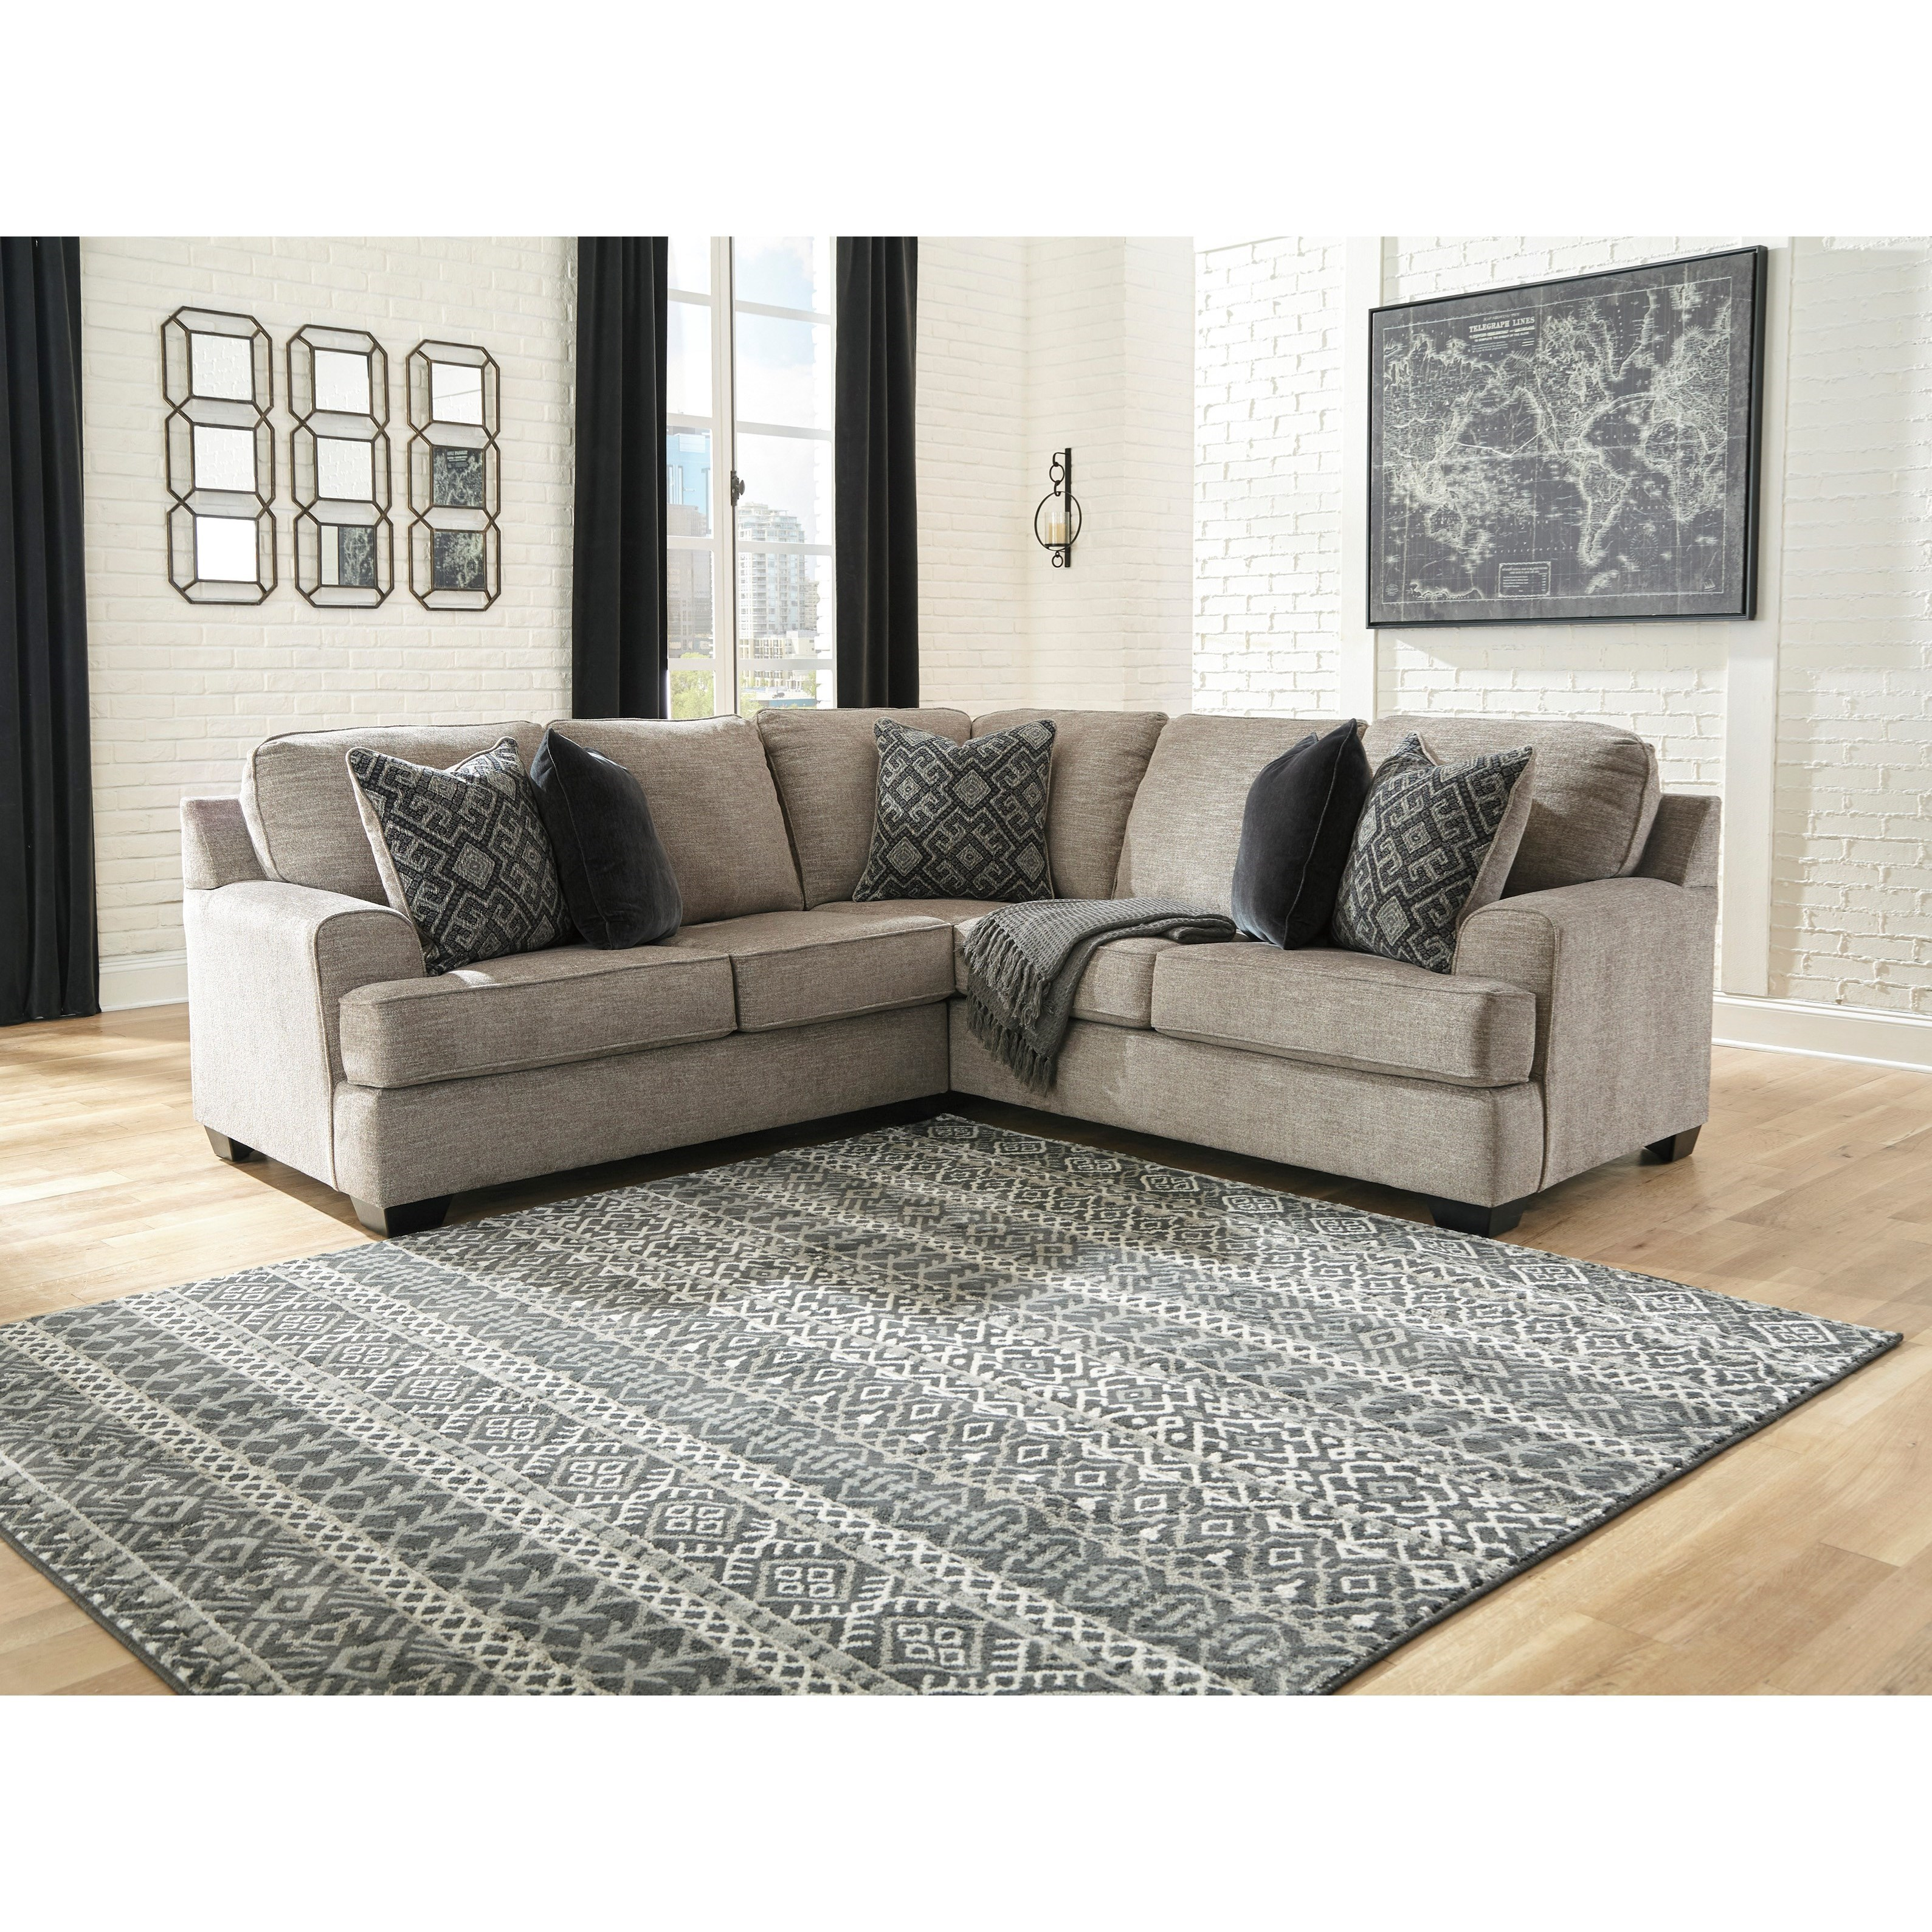 Bovarian 2-Piece Sectional by Signature Design by Ashley at Household Furniture